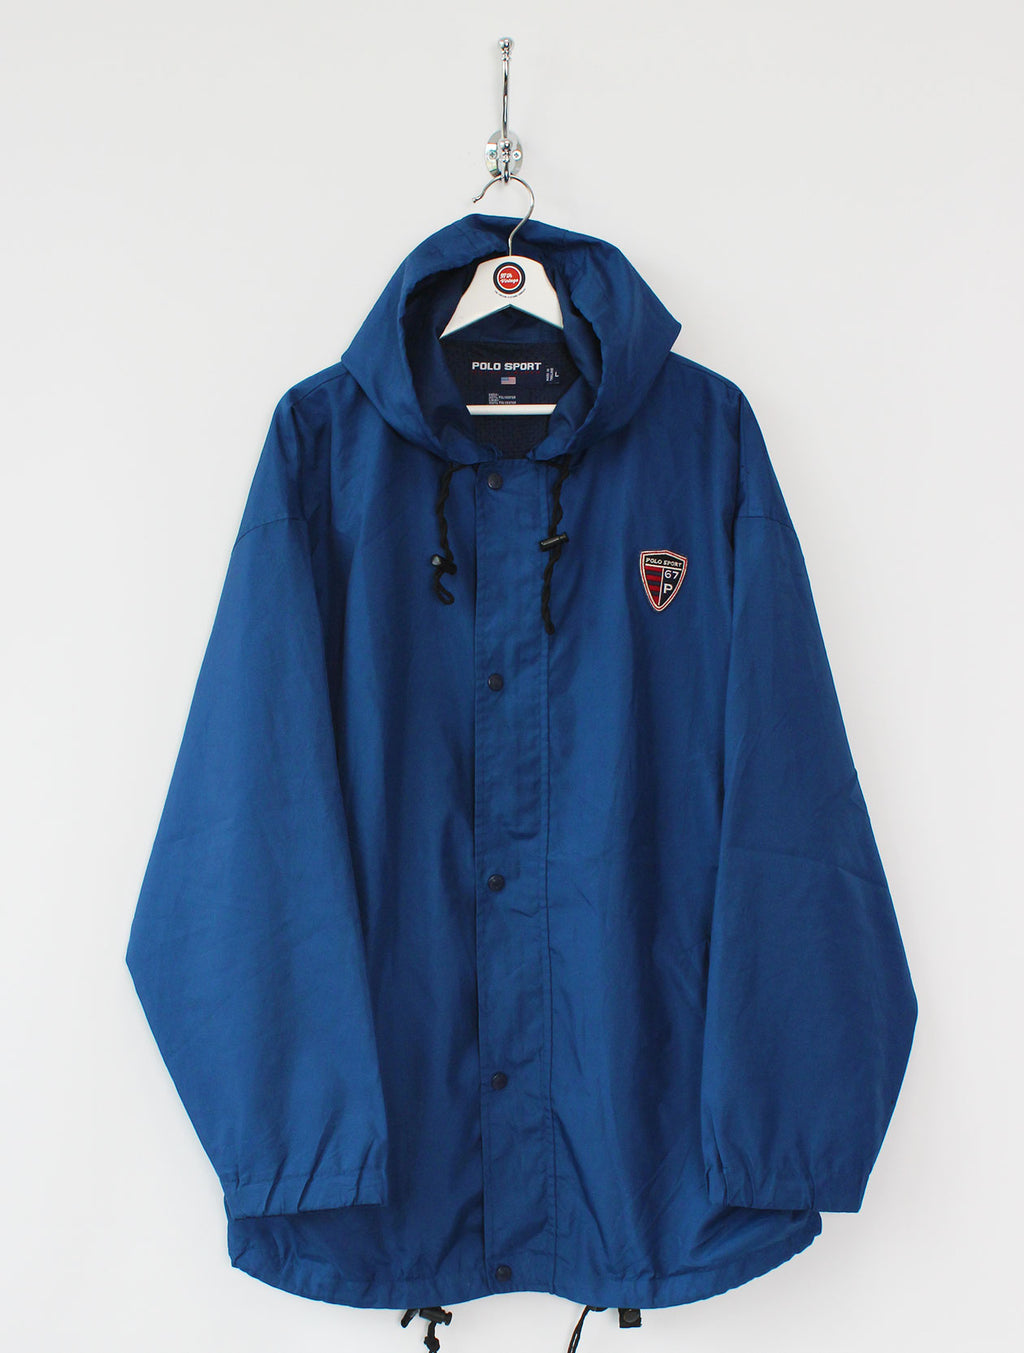 Ralph Lauren Polo Sport 67 Badge Jacket (XL)